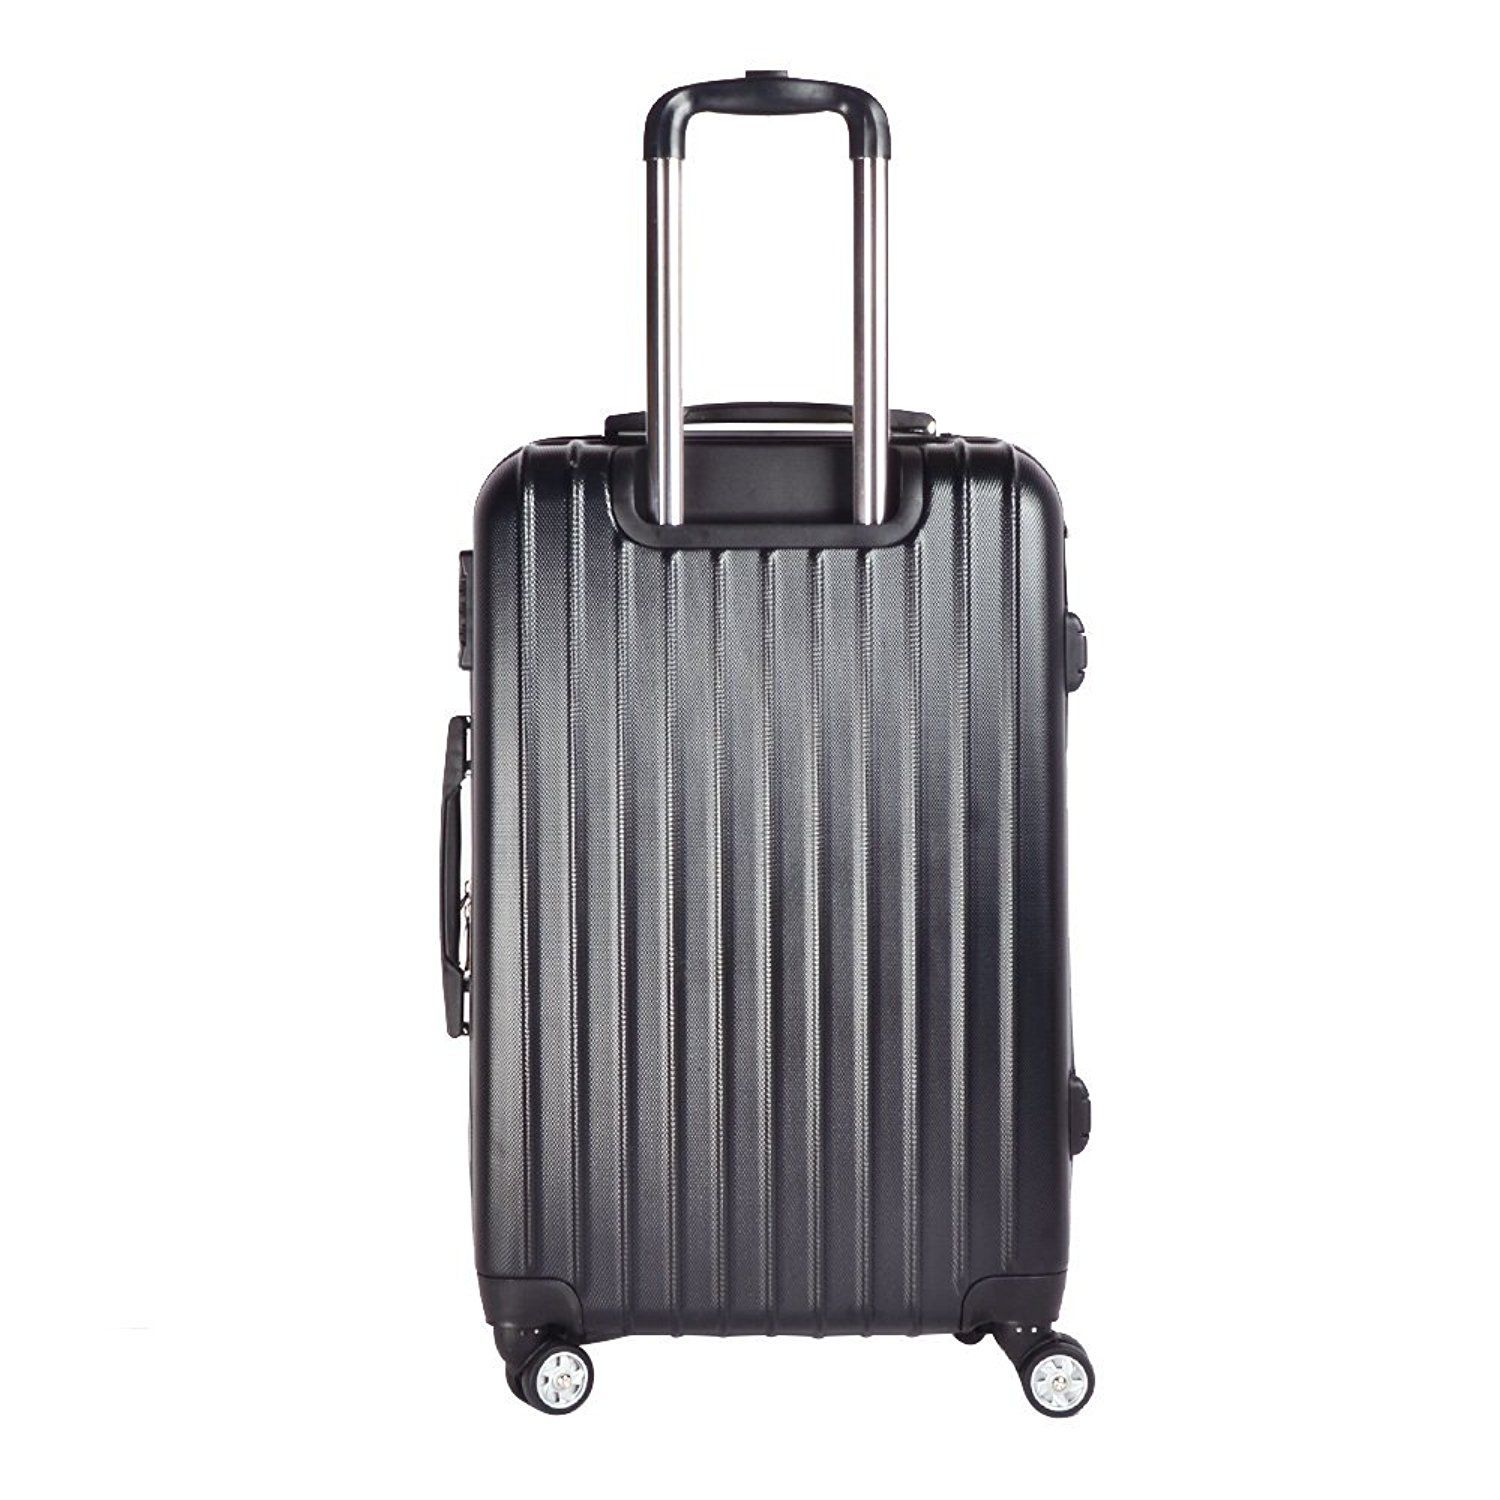 3aeed5d9277a Sunydeal ABS Hard Shell Luggage Trolley Bag Case Super Lightweight 4 ...